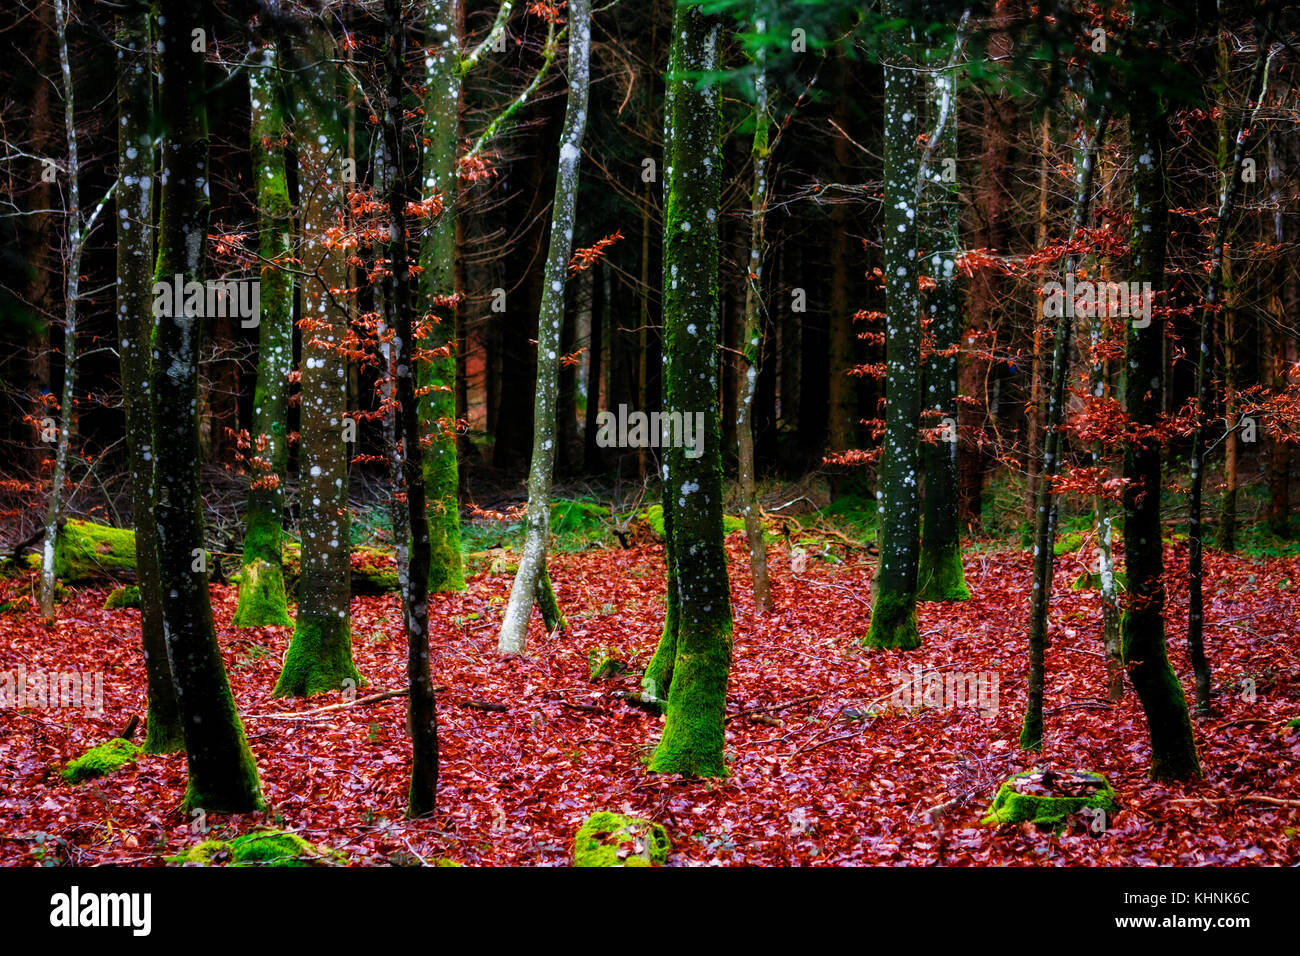 Colorful autumn forest. Seasonal, peaceful concept. Contrast of vivid colors. - Stock Image